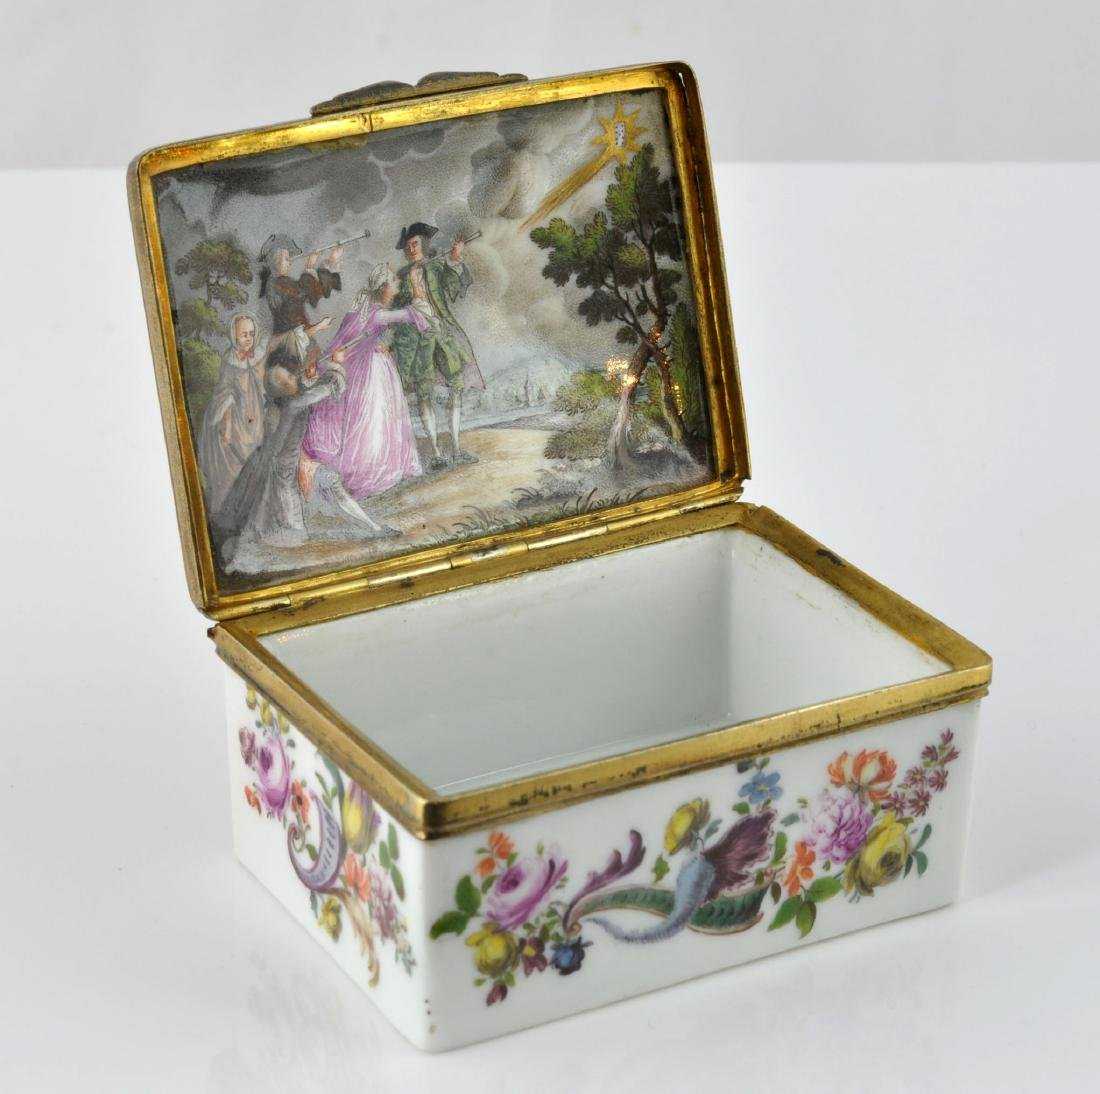 German Porcelain Comet Card Game Snuff Box - 2